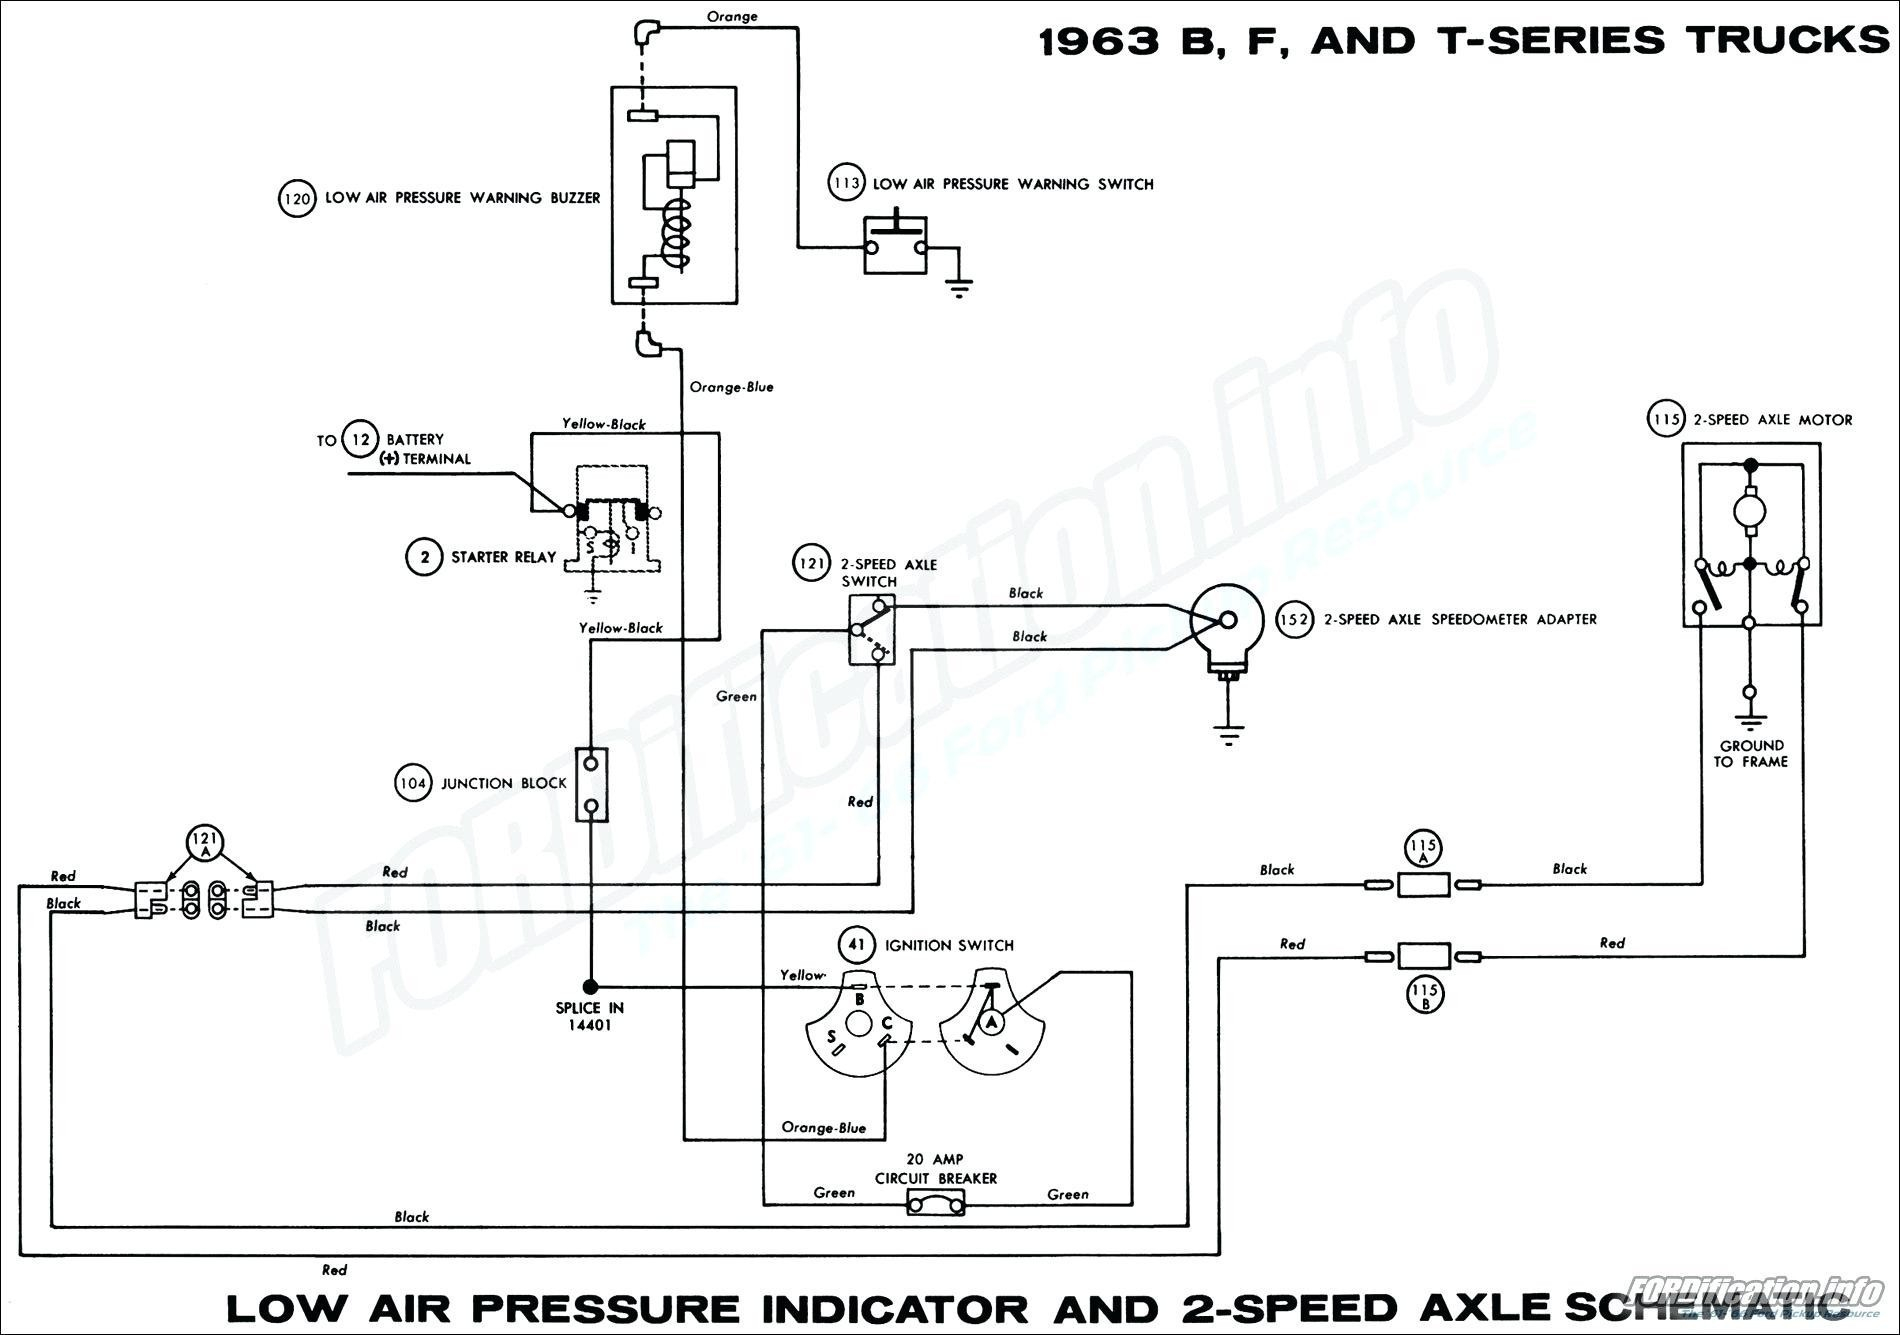 Square D Motor Downloads Wiring Diagram For Magnetic Starter Copy - Magnetic Starter Wiring Diagram